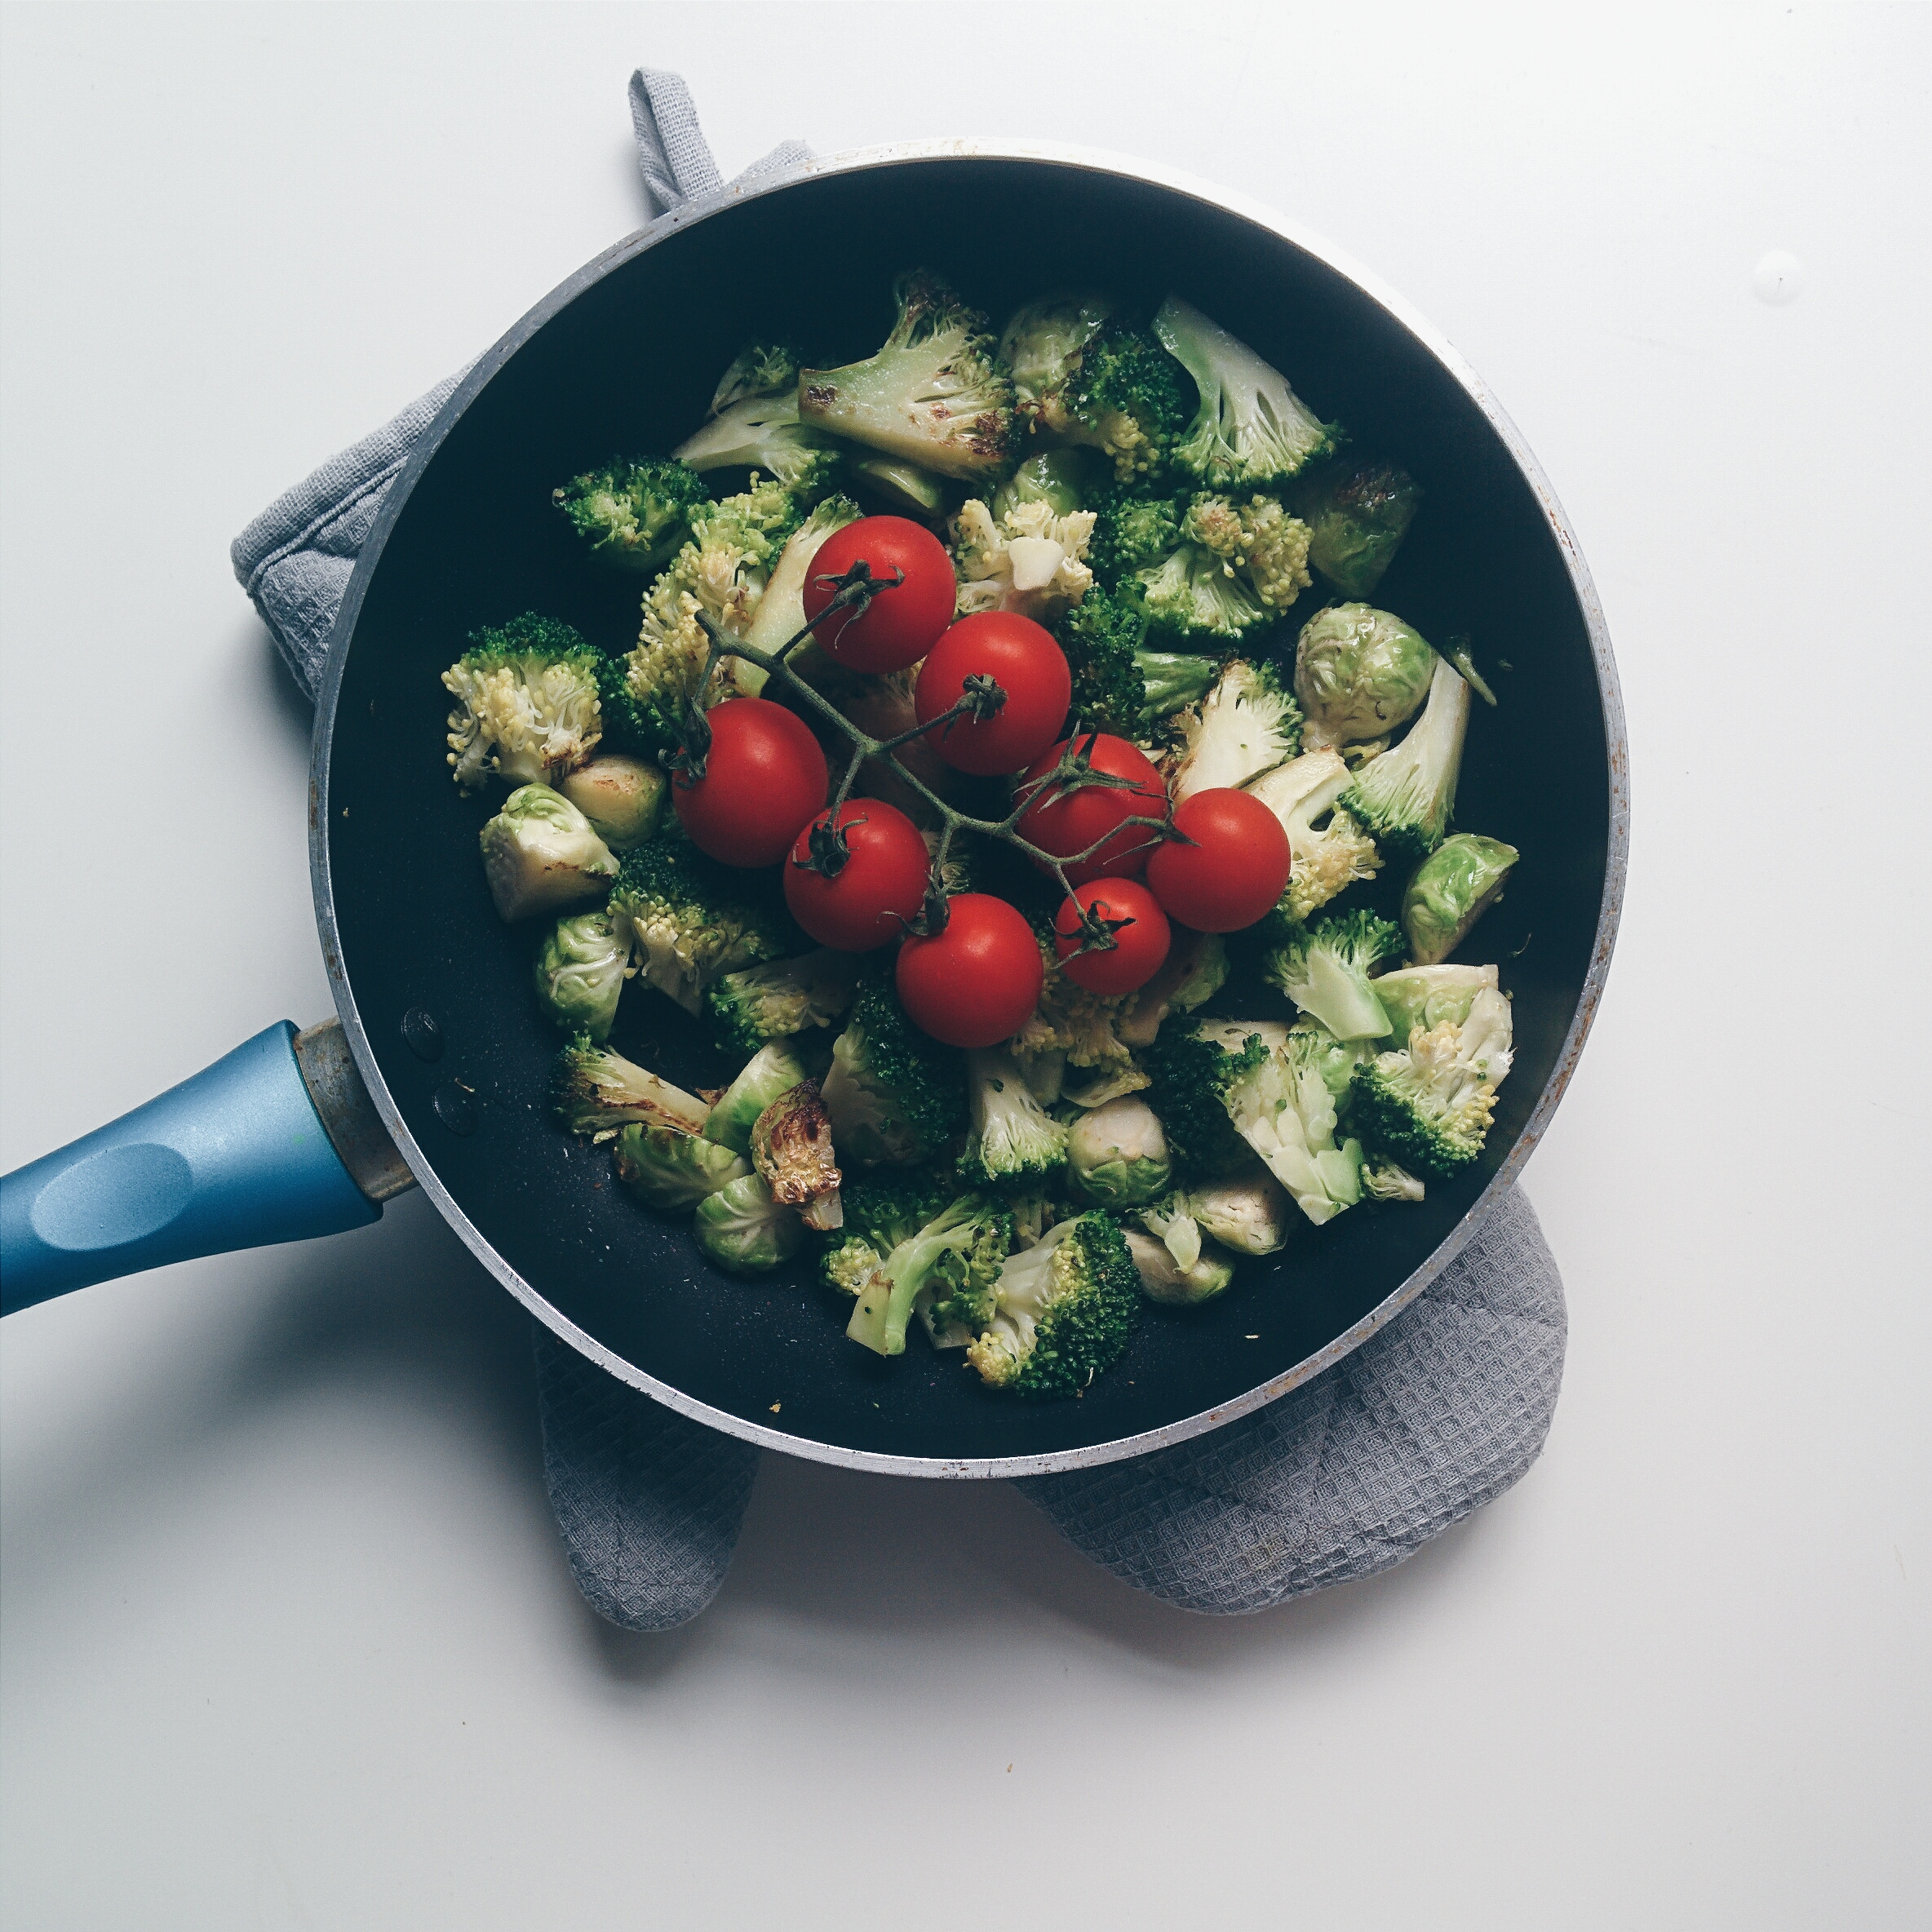 Pan with broccoli, brussel sprouts and tomatoes